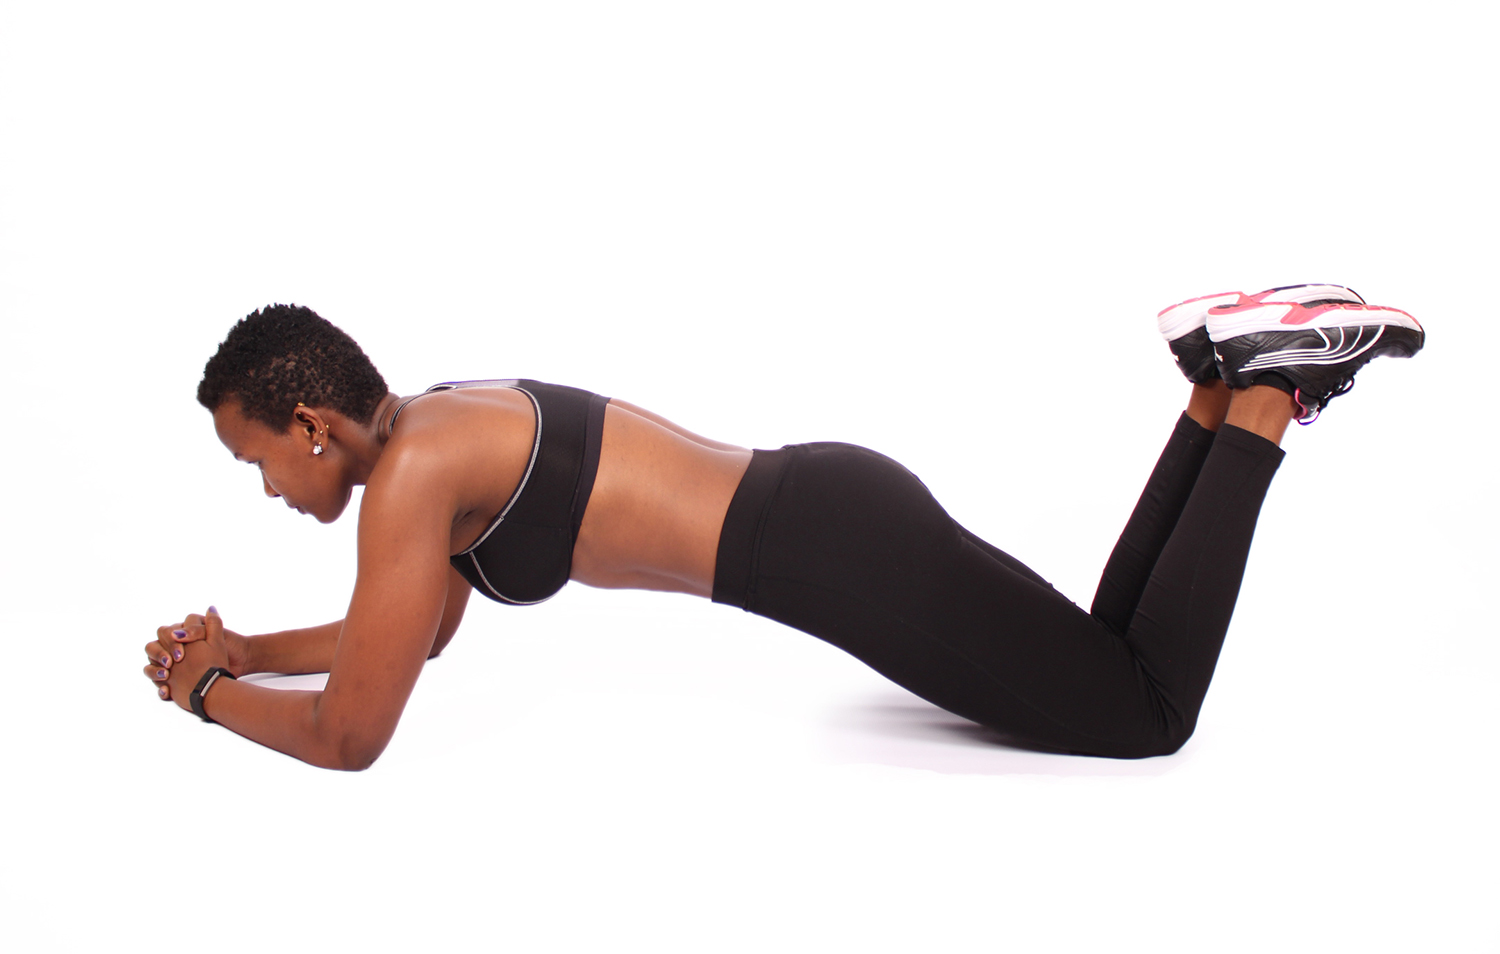 Athletic woman doing knee plank on isolated background